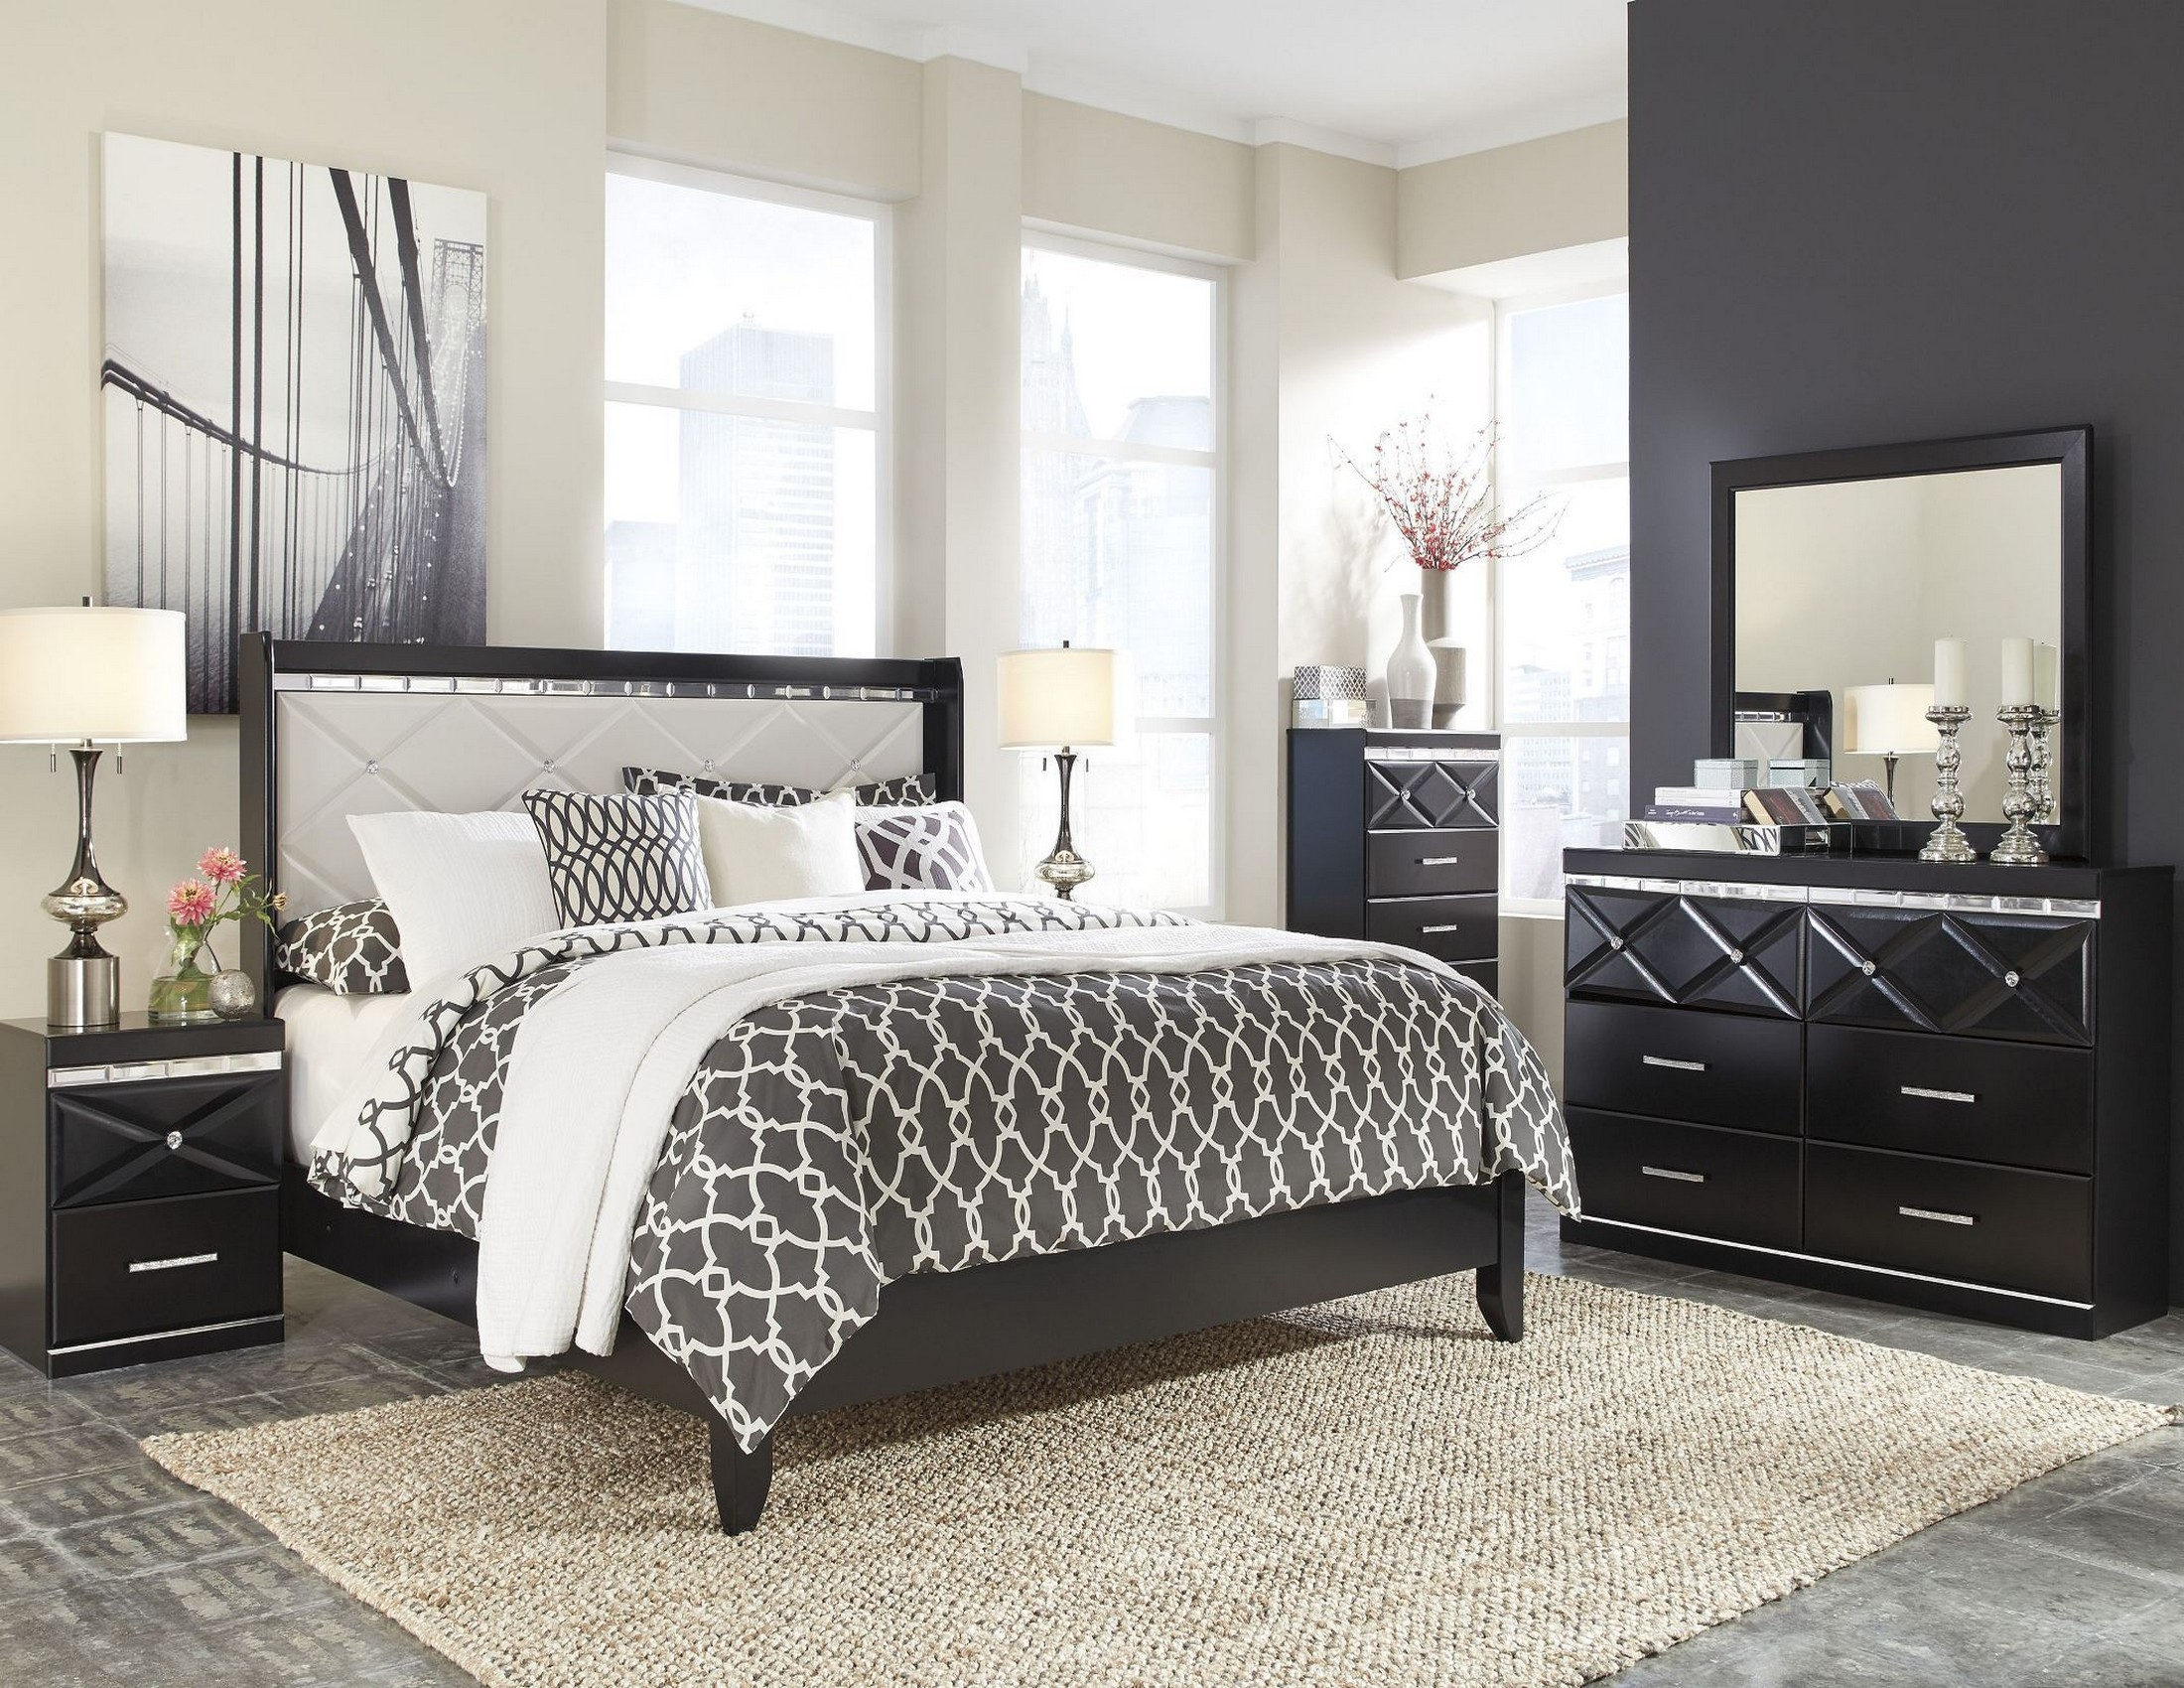 Fancee White Panel Bedroom Set From Ashley B348 57 54